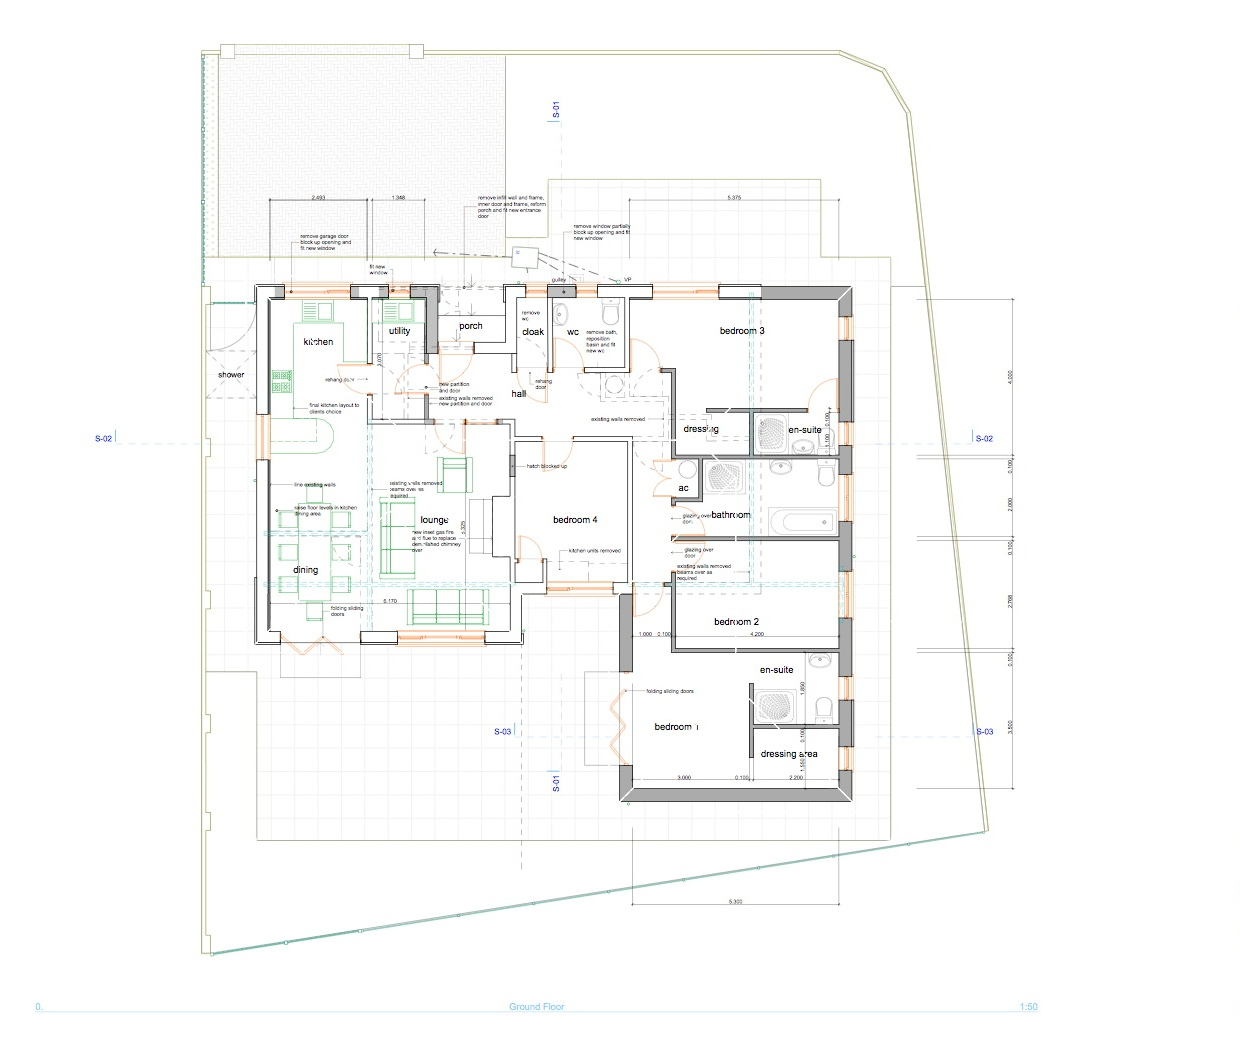 2324 Floor Plan_edited